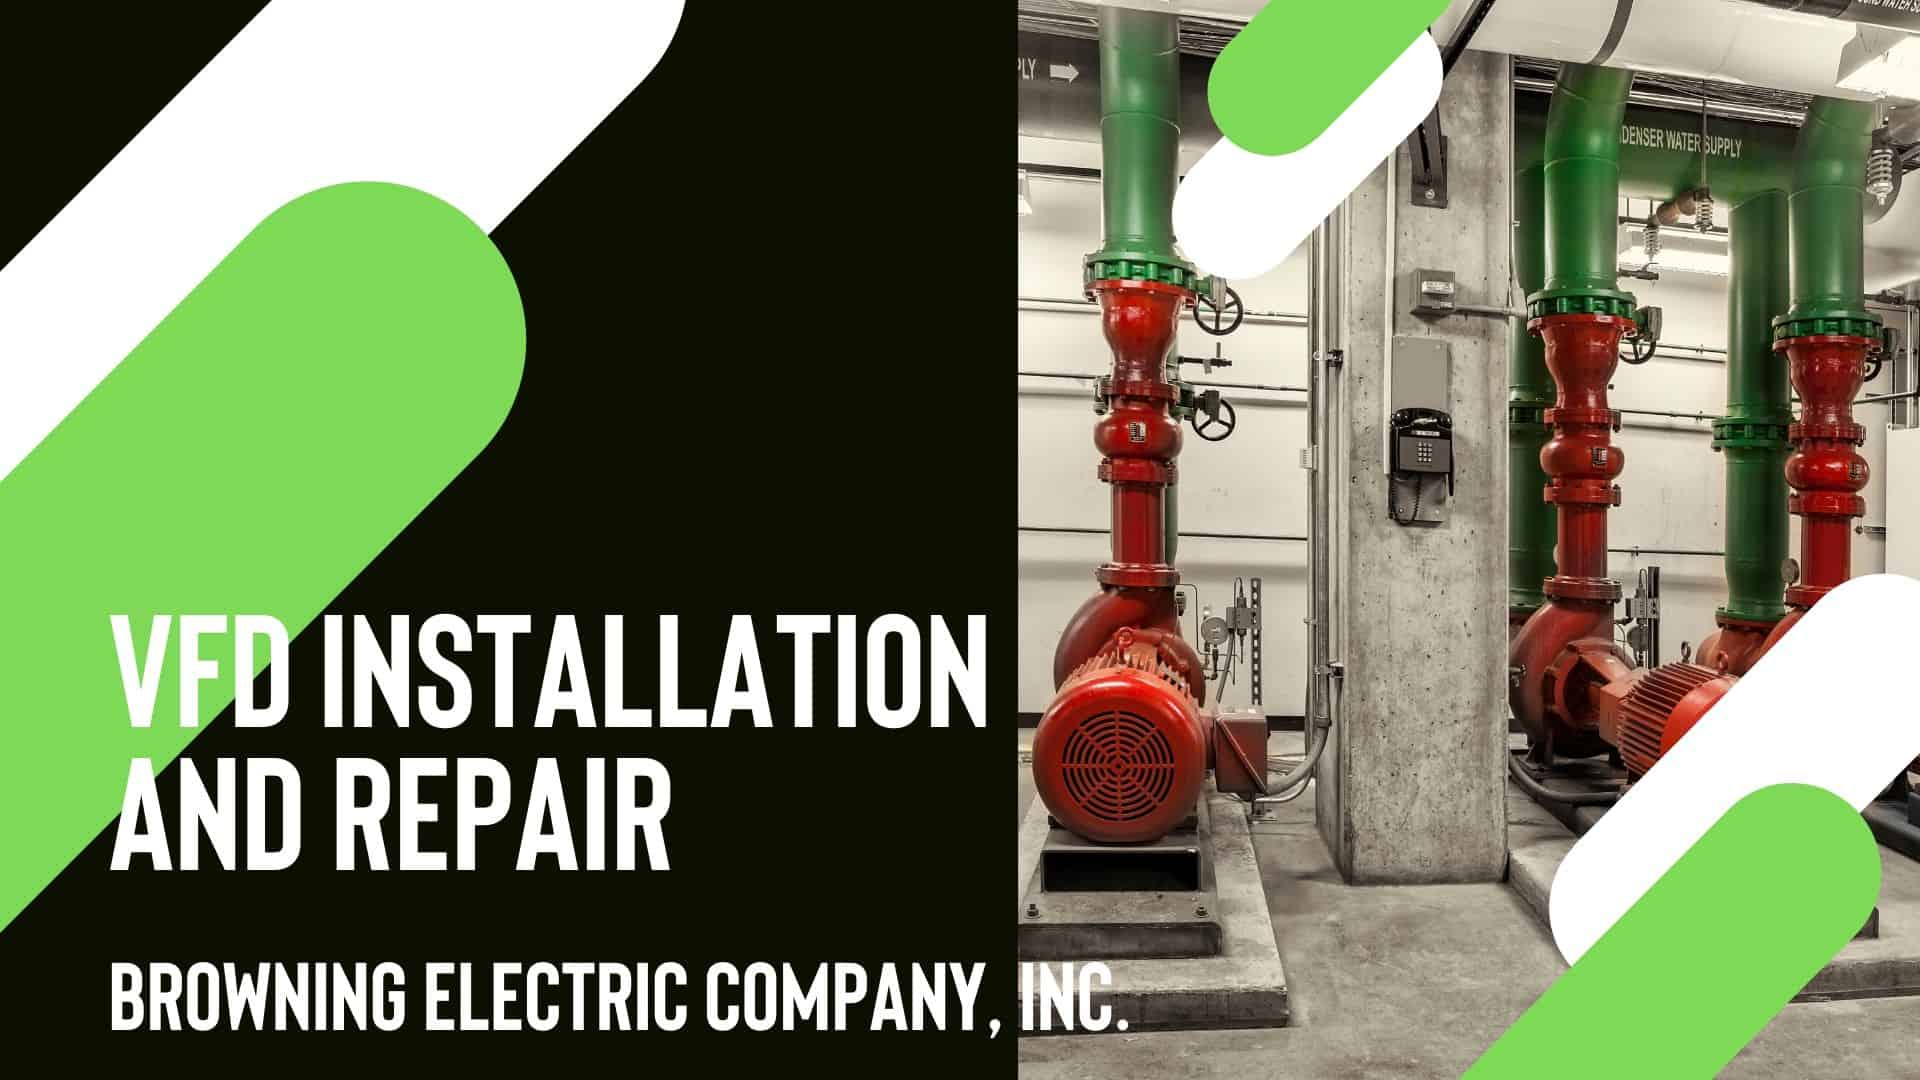 vfd installation and repair image